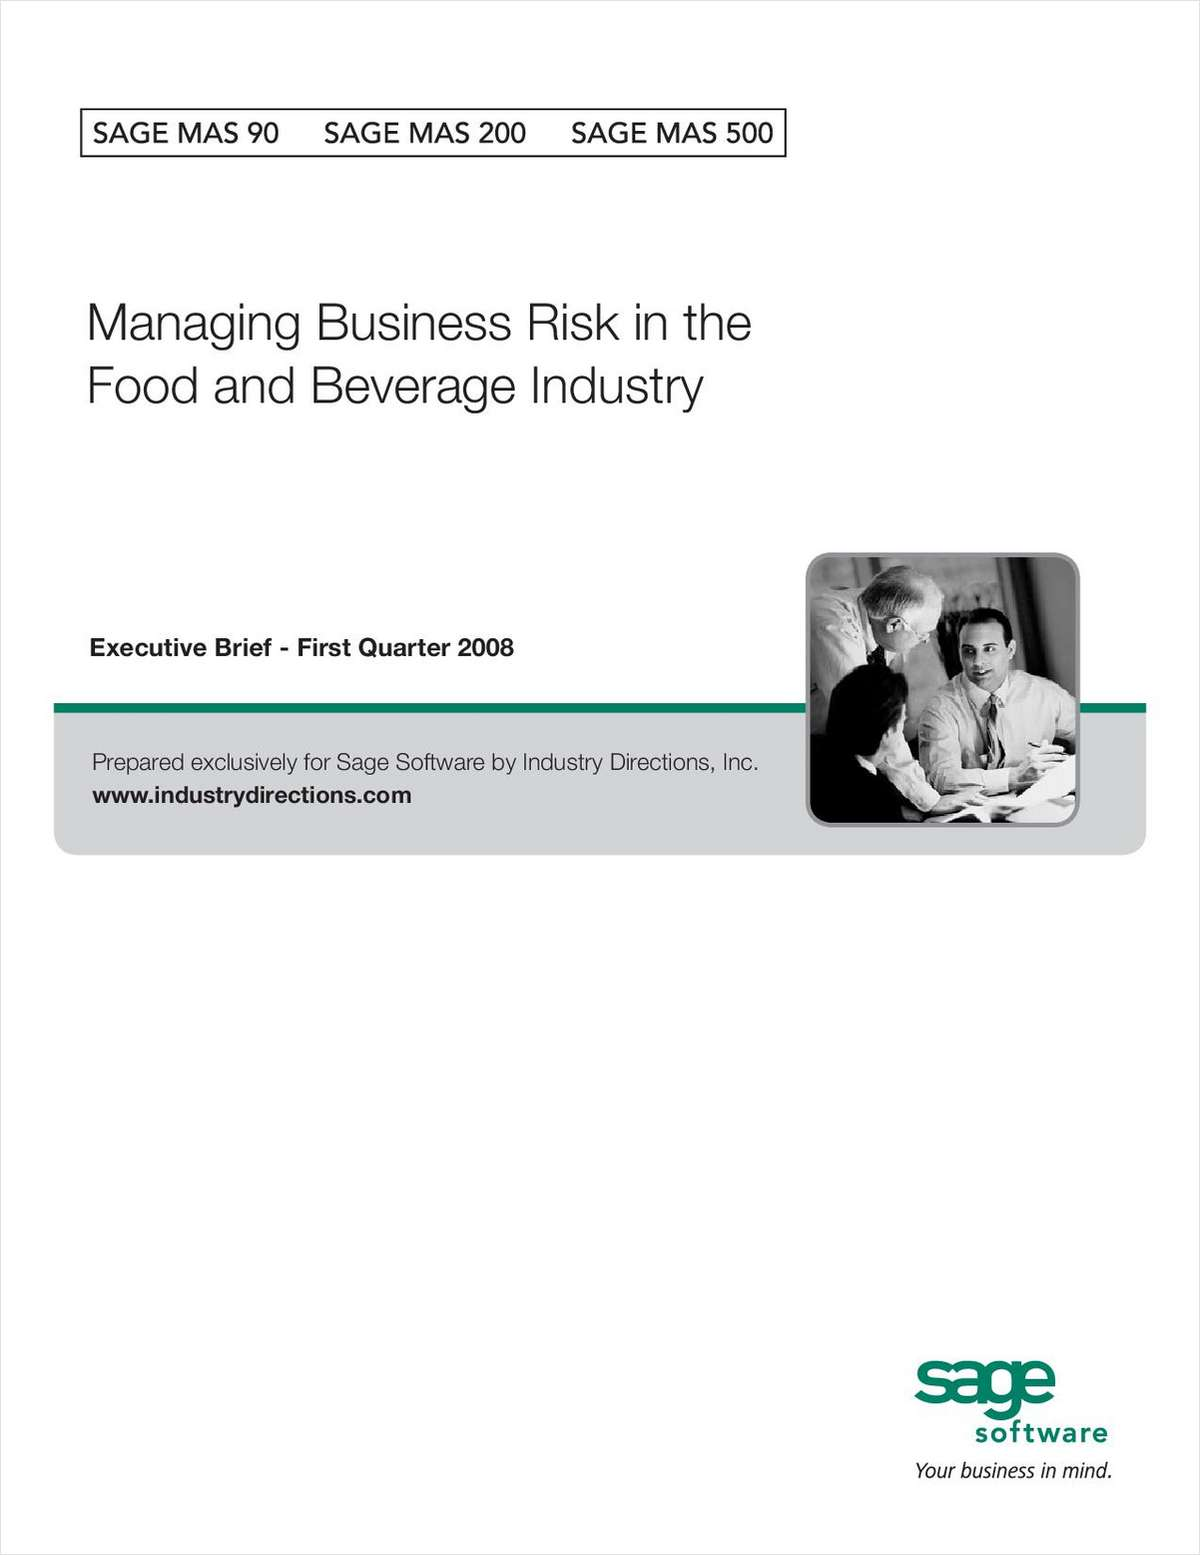 Managing Business Risk in the Food & Beverage Industry